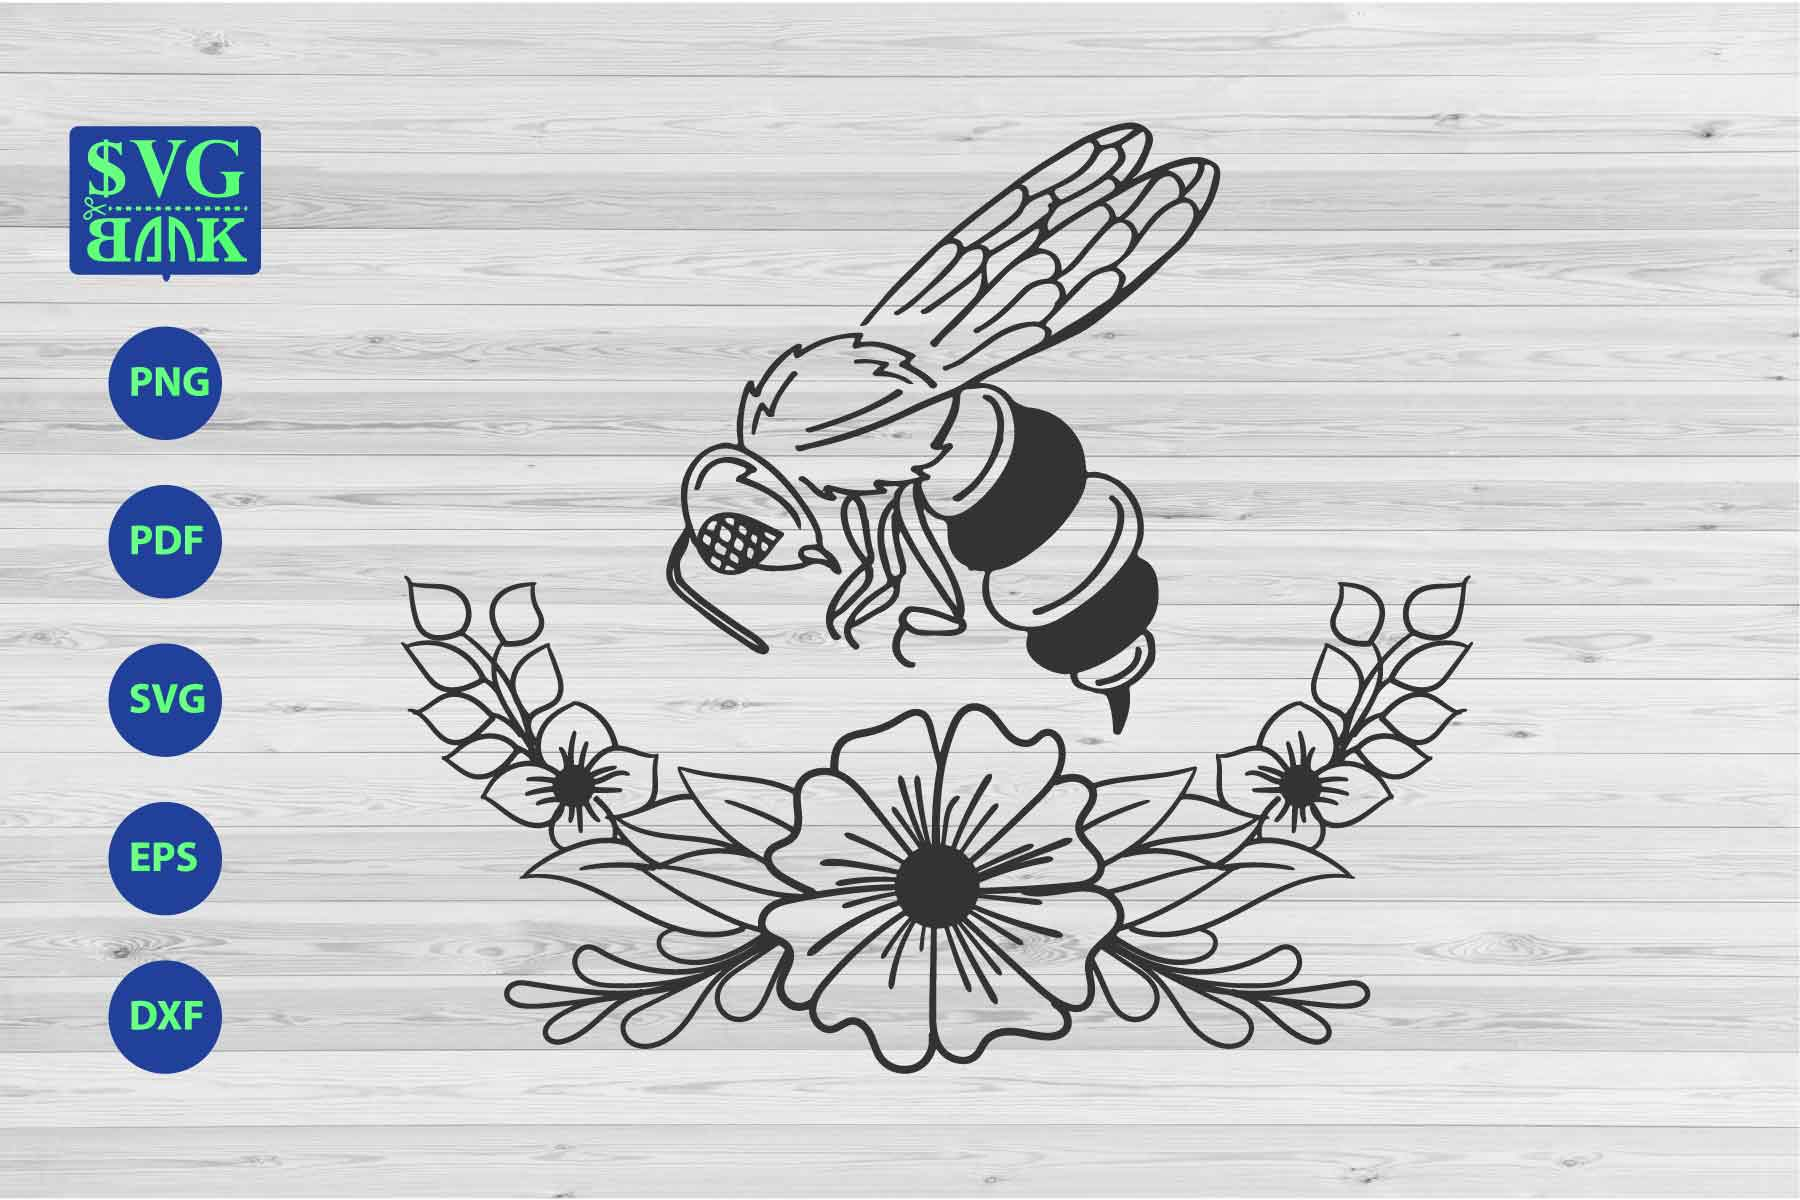 Download Free Bee With Floral Graphic By Svgbank Creative Fabrica for Cricut Explore, Silhouette and other cutting machines.